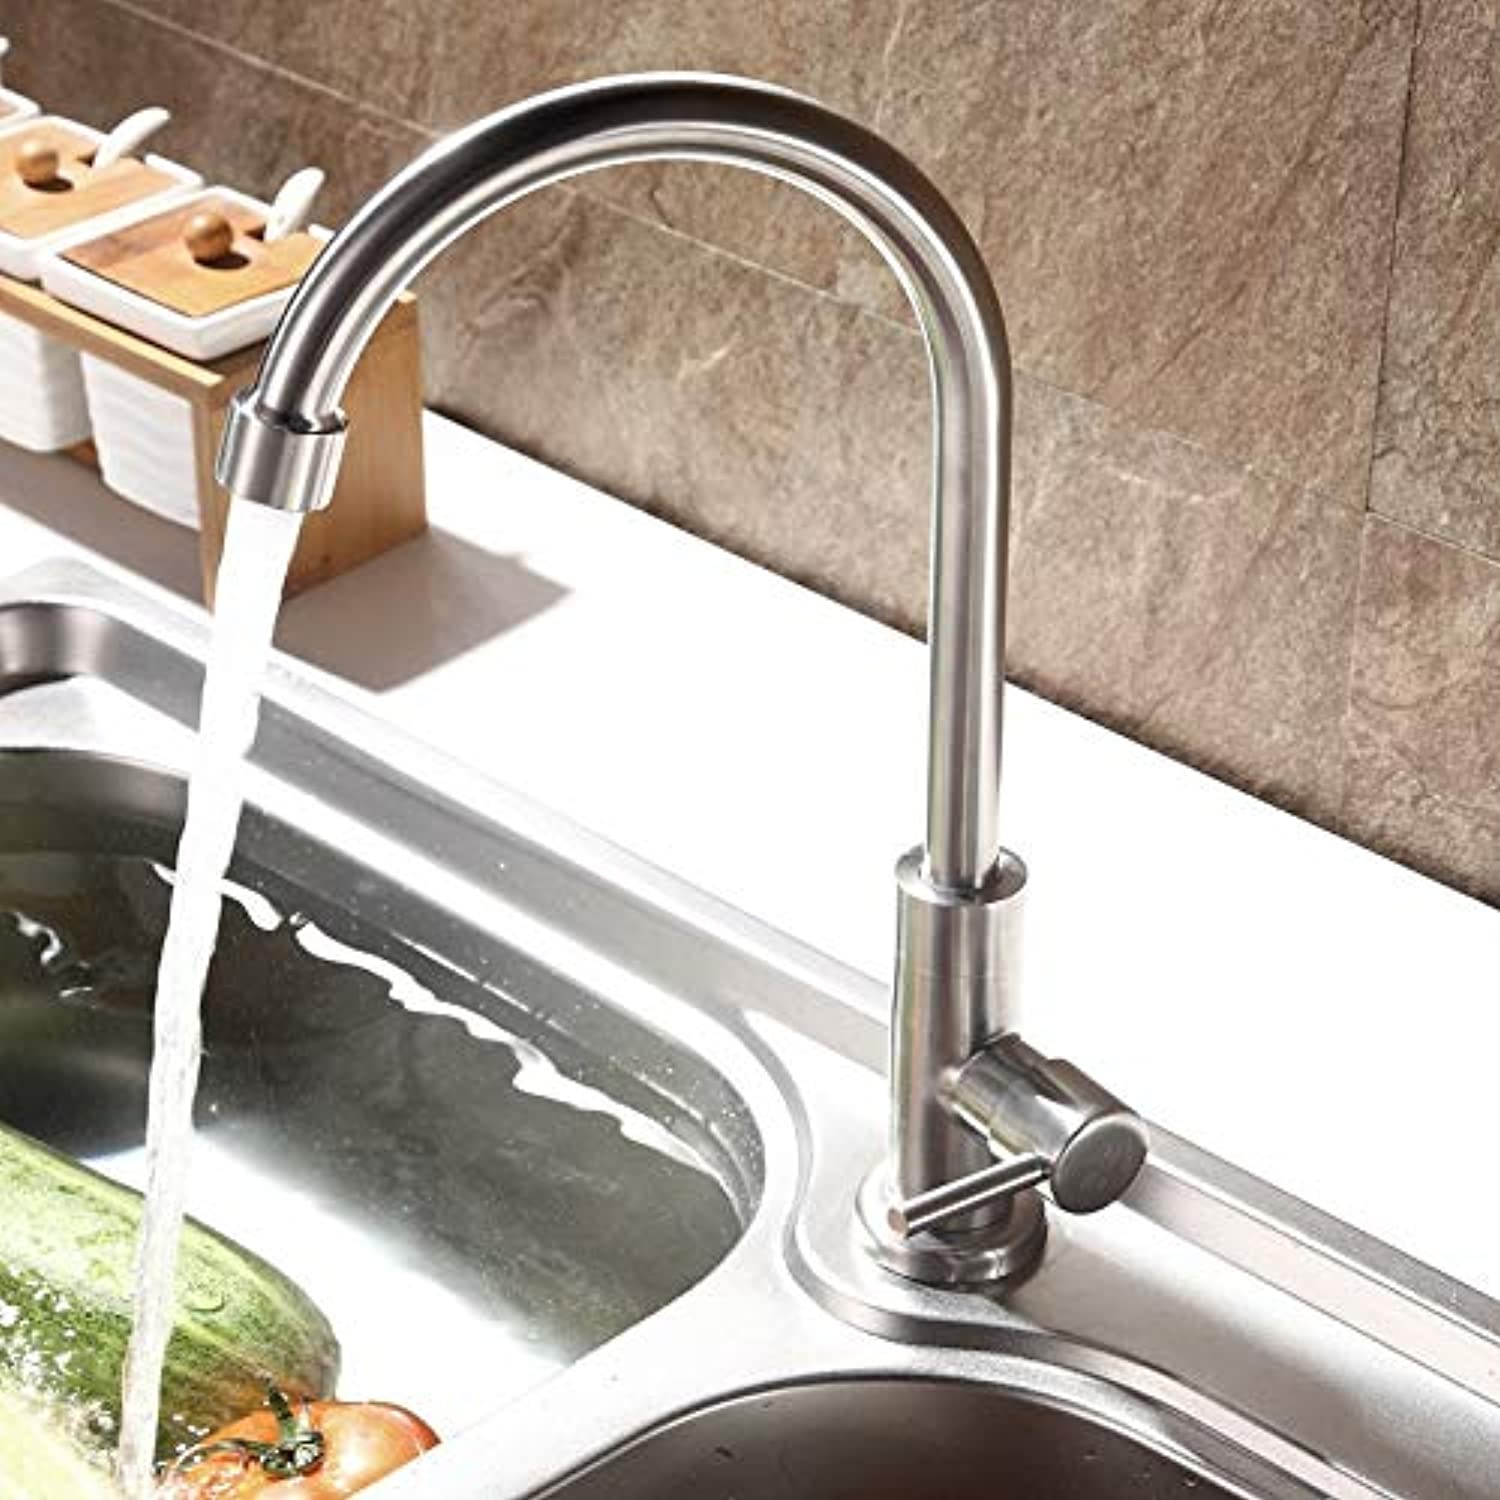 Stainless Steel Sink Faucet Kitchen Hot and Cold Home Improvement Sink redating Faucet